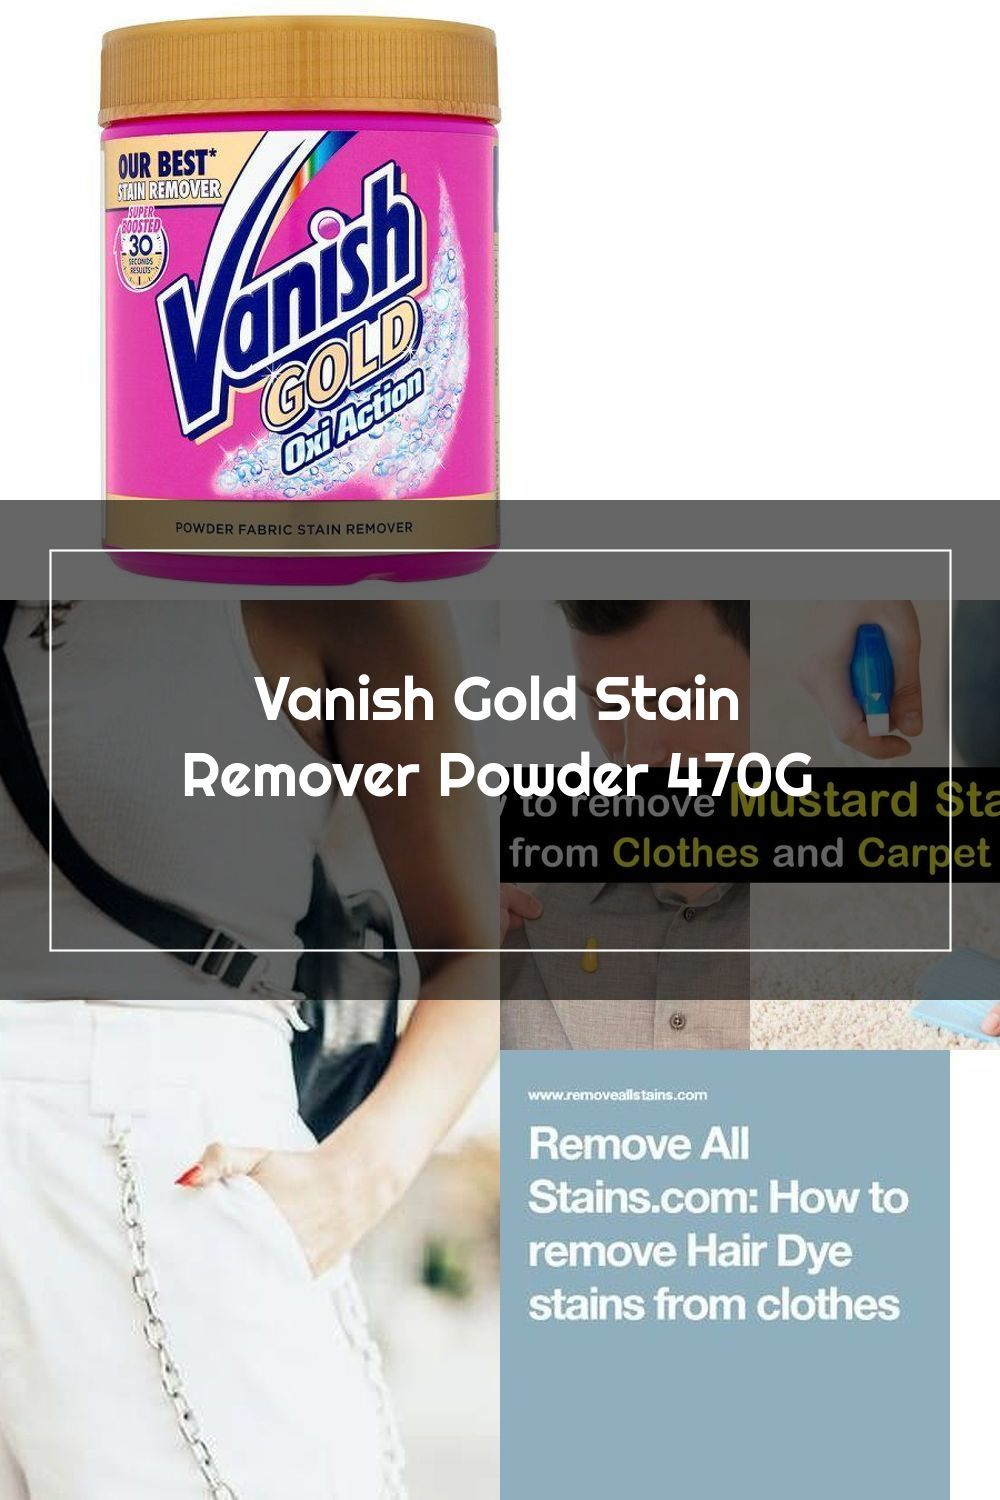 Vanish Gold Stain Remover Powder 470g Groceries Tesco Groceries In 2020 Stain Remover Remove Deodorant Stains Stain